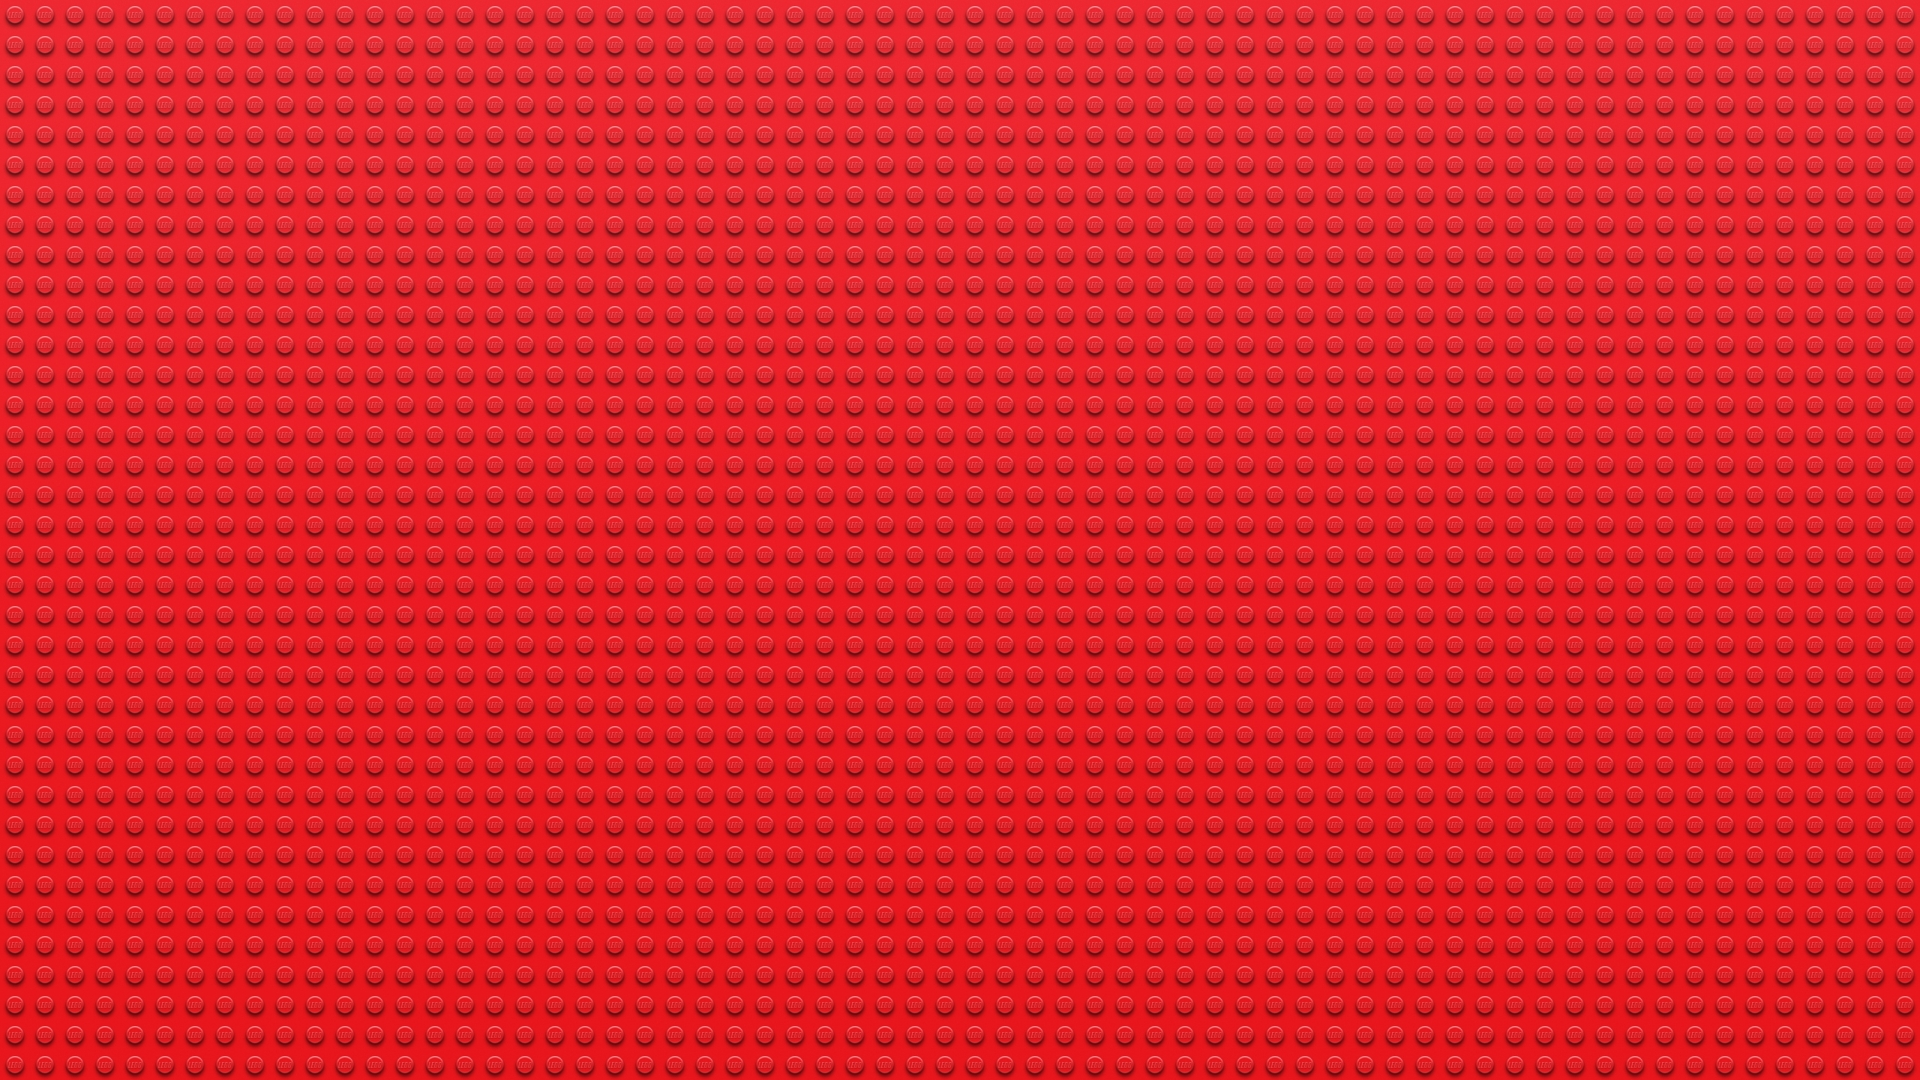 Red Lego Wallpaper